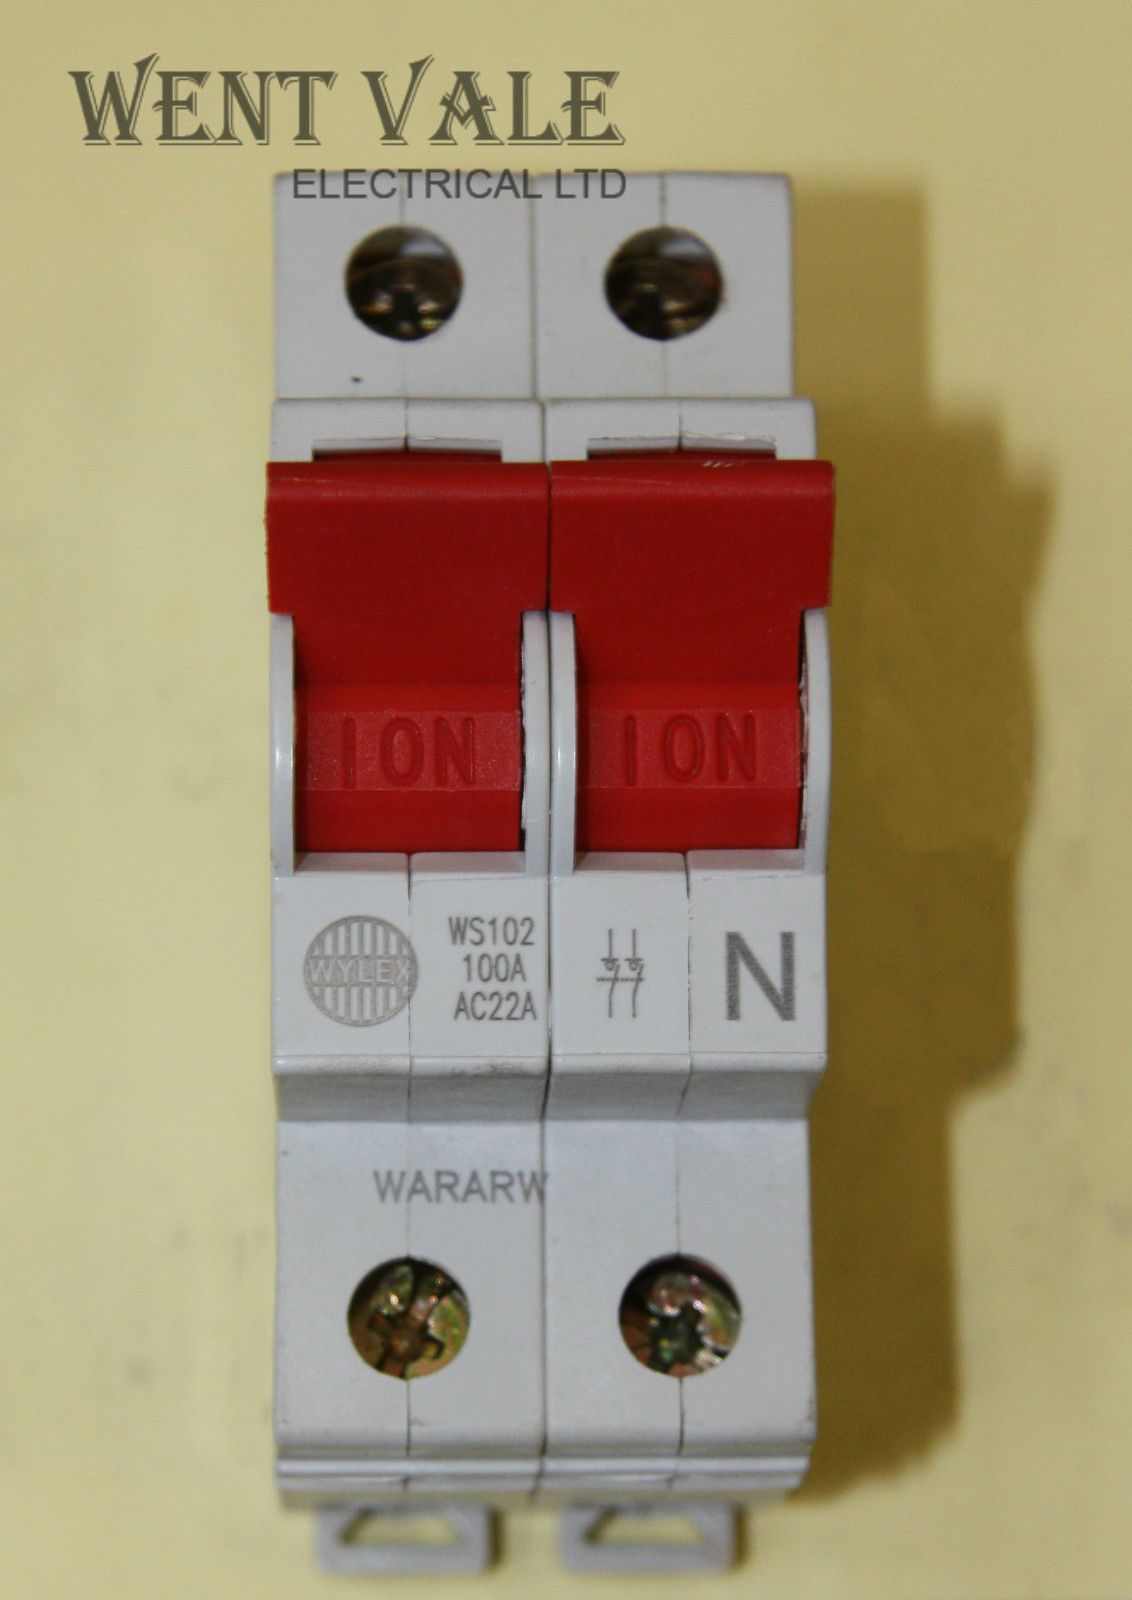 Wylex Fuse Box Bs Number Wiring Diagrams Mcb Circuit Breakers To Replace Rewire Fuses Mini Trip Plug Isolator Range Ws102 100a Ac22a Double Pole Switch Consumer Unit 10 A Way